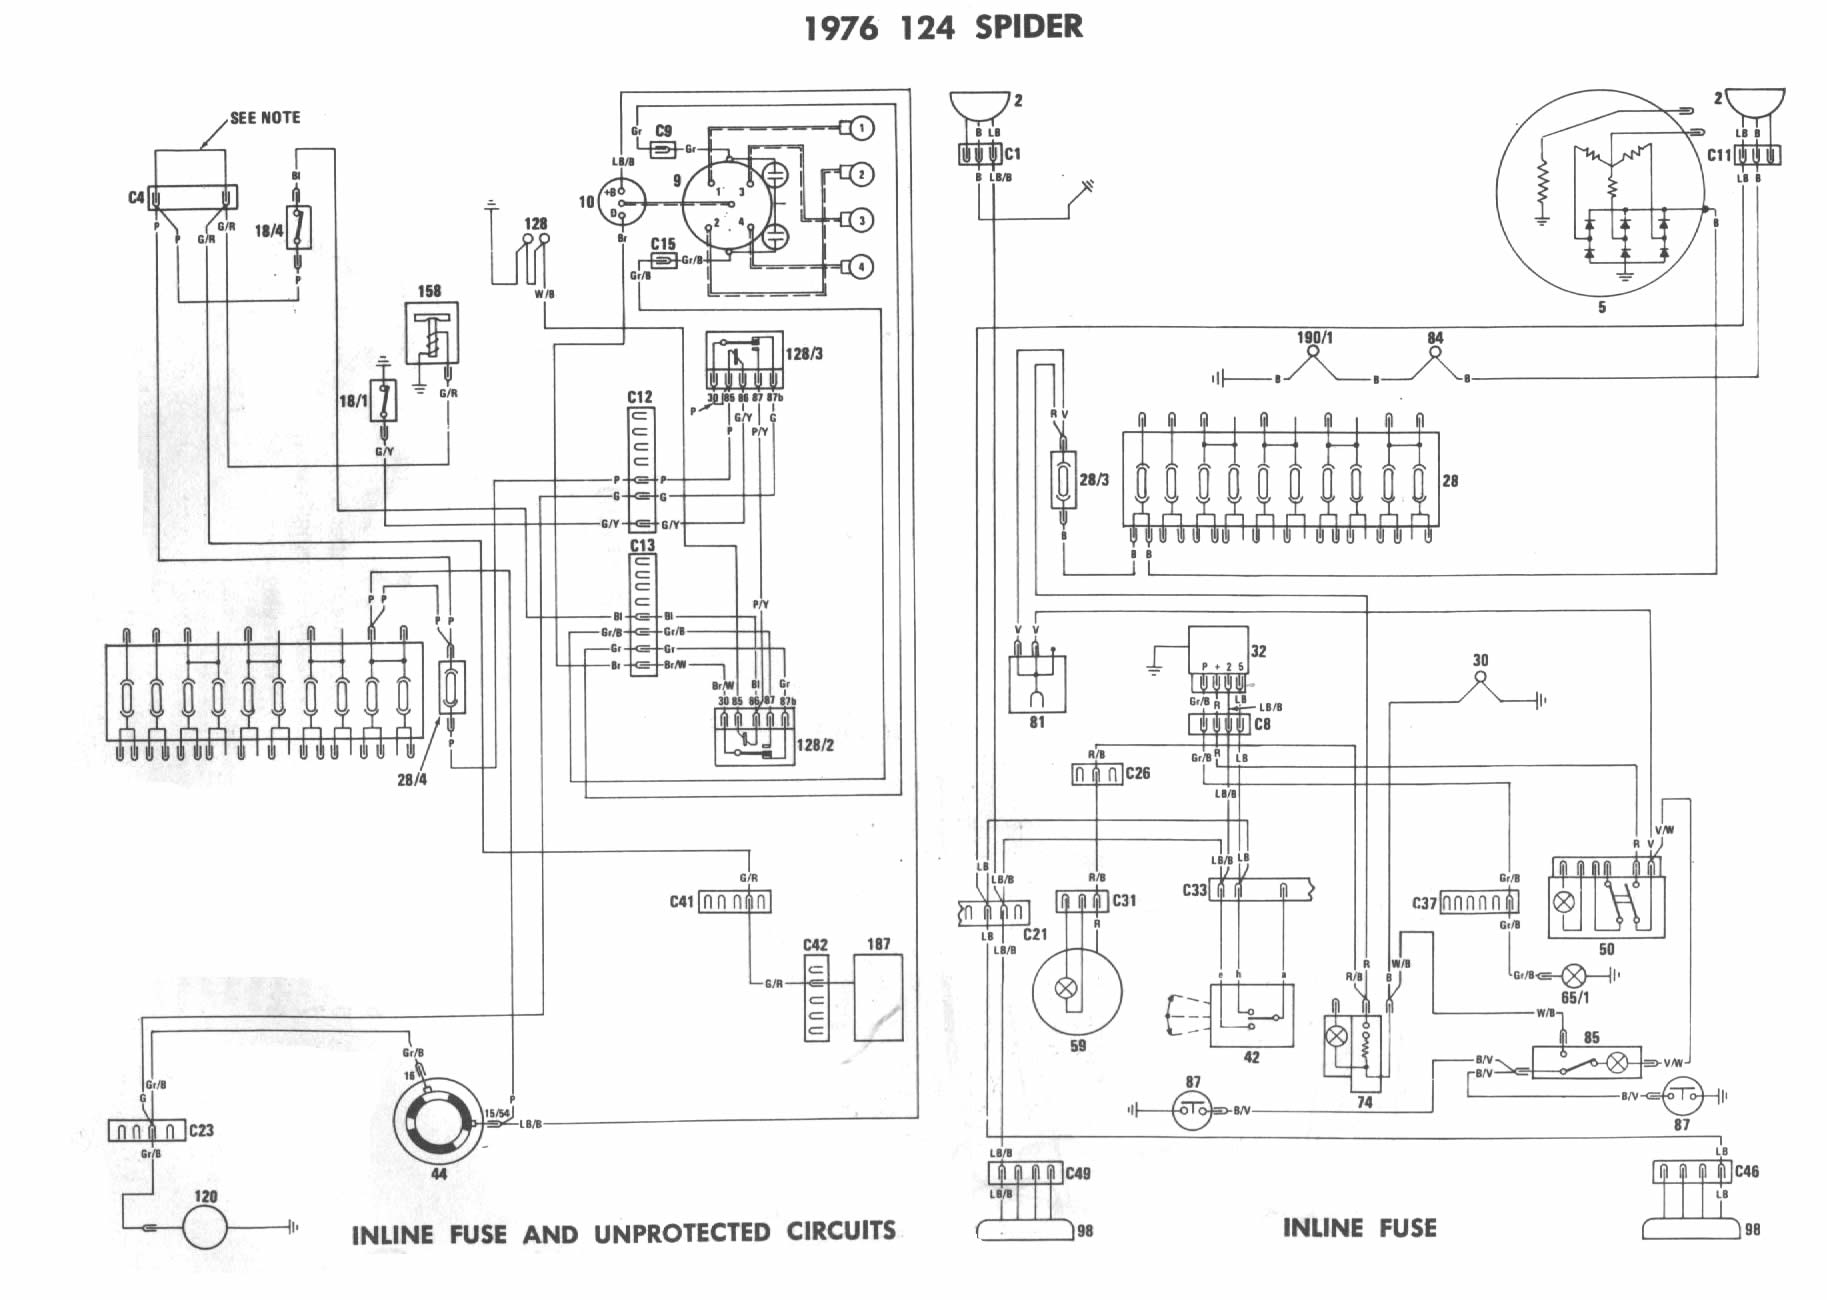 1999 Volvo Semi Truck Wire Diagrams further Fiat 127 Wiring Diagram additionally Front Suspension Parts Amazon   Html furthermore 512250 together with 544 20Wiring 20Diagrams. on volvo amazon wiring diagram